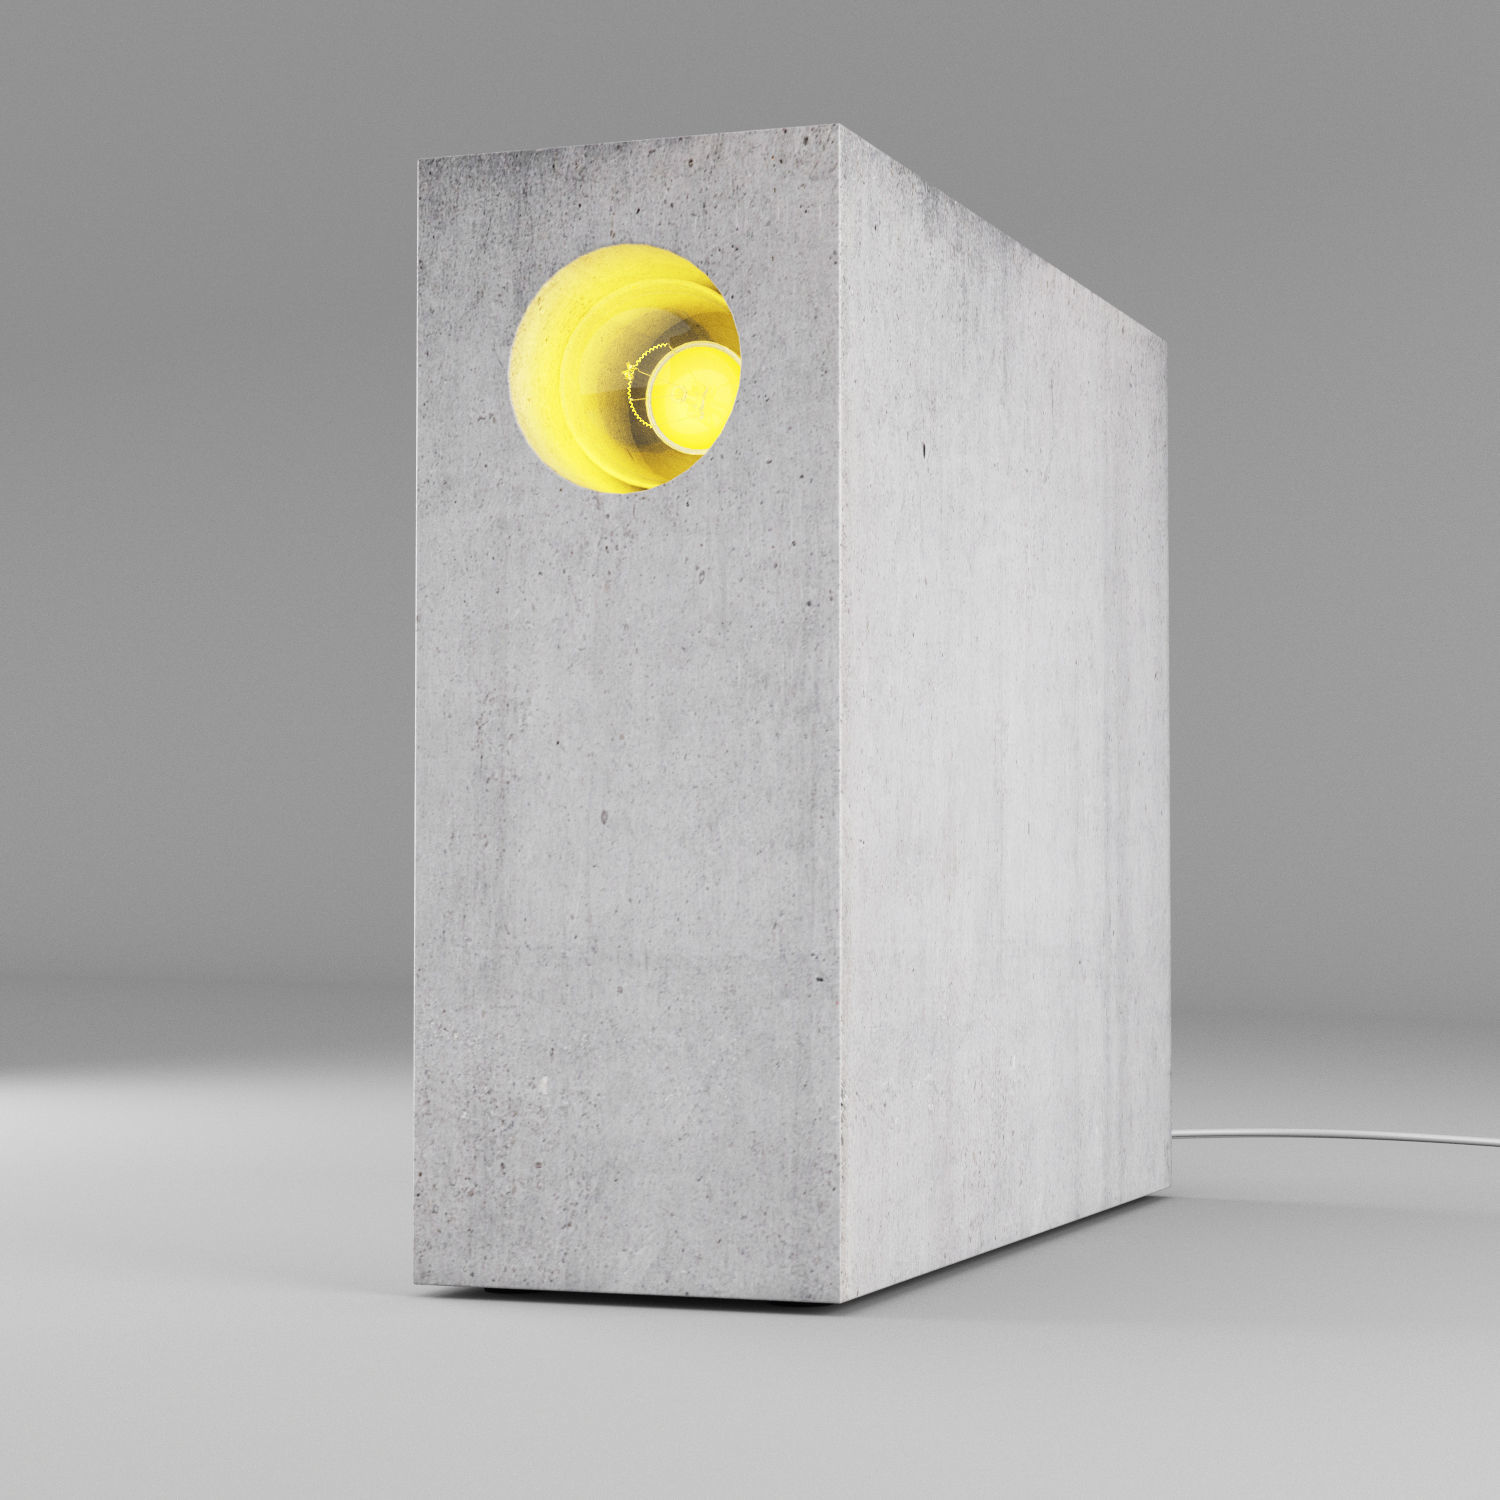 Concrete table light 2